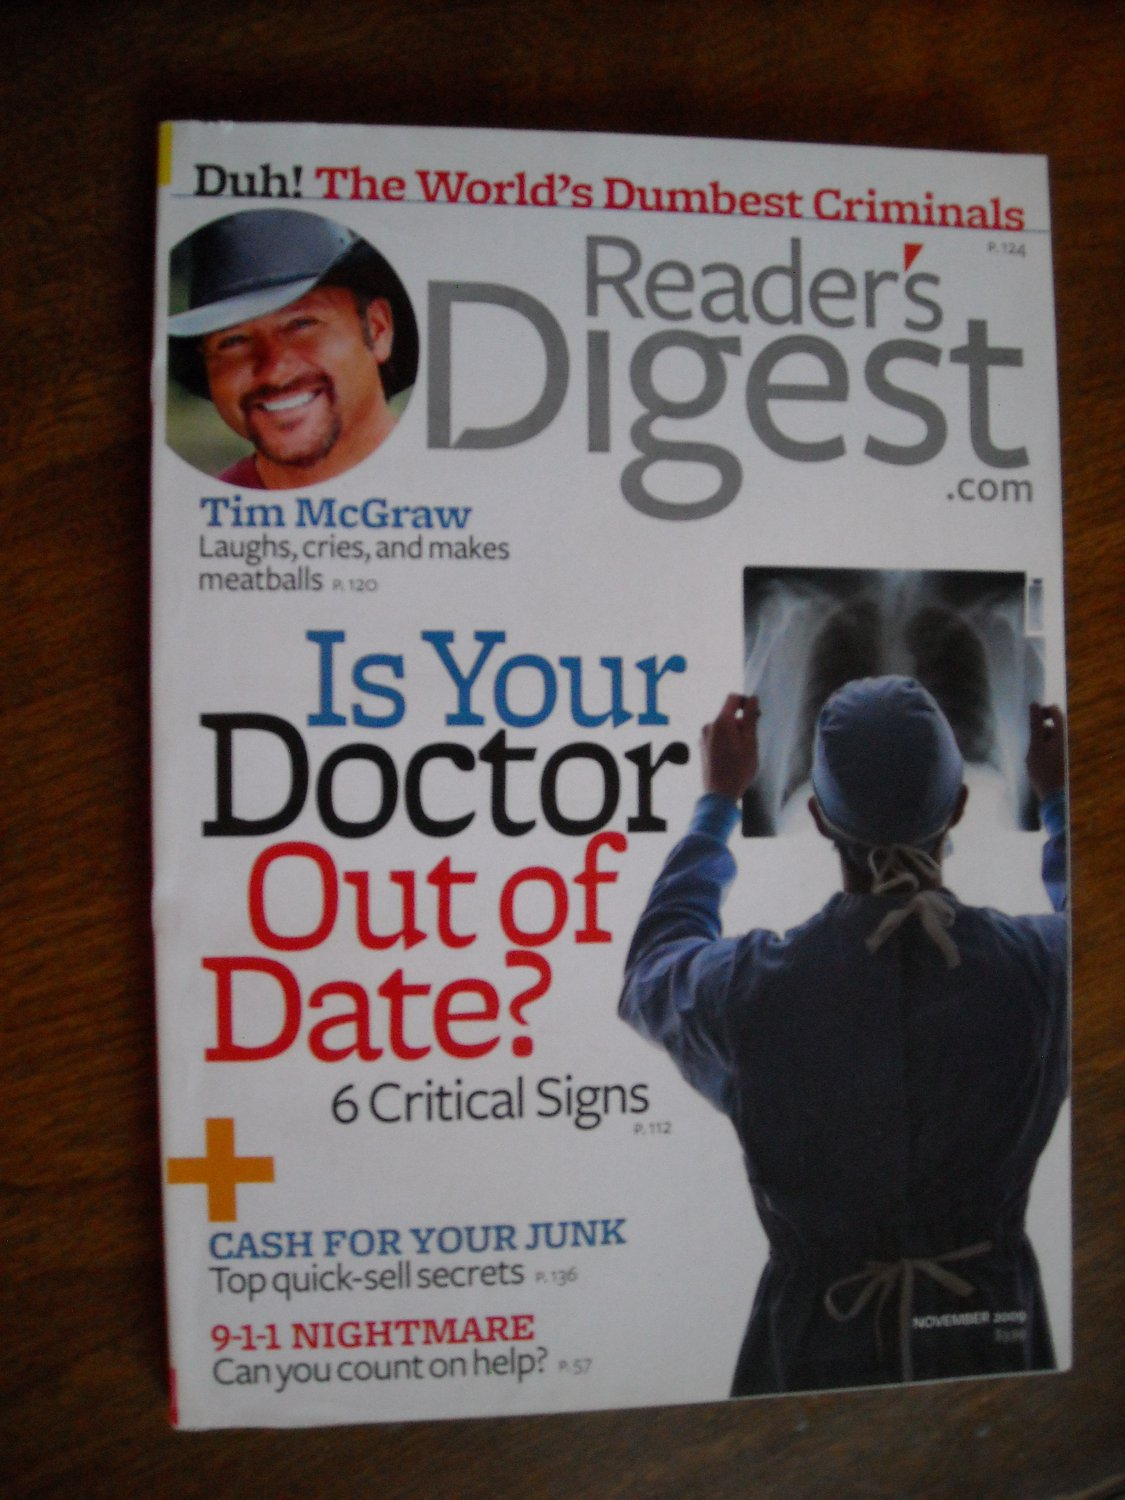 Reader's Digest Magazine November 2009 - Tim McGraw - Is Your Doctor Out of Date